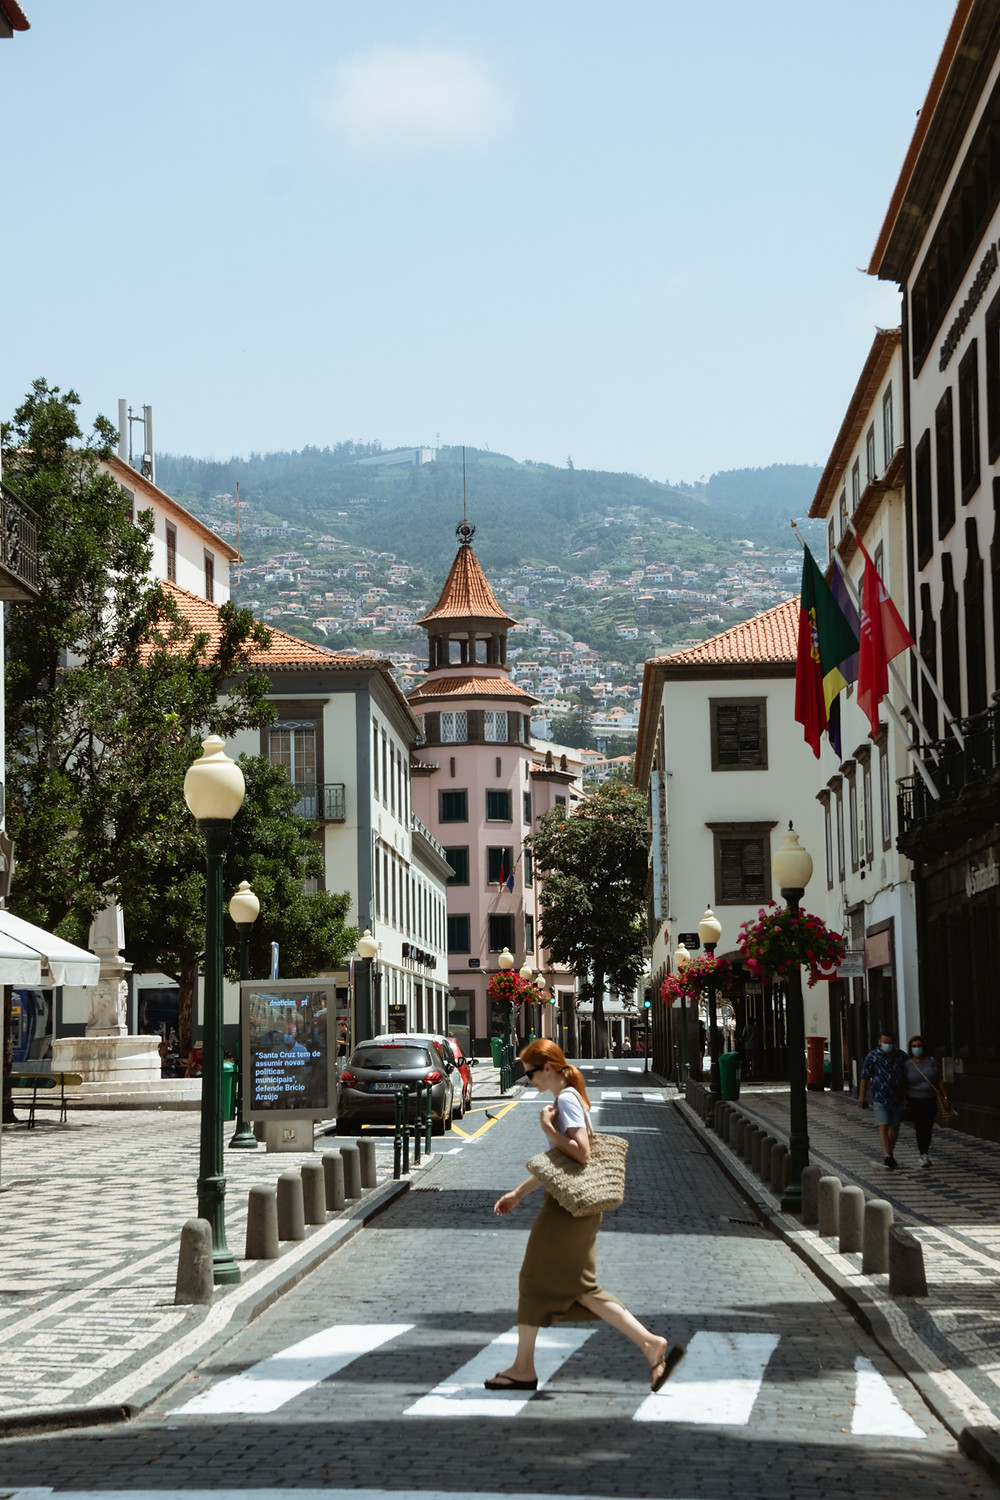 Suvelle a passear no centro do Funchal